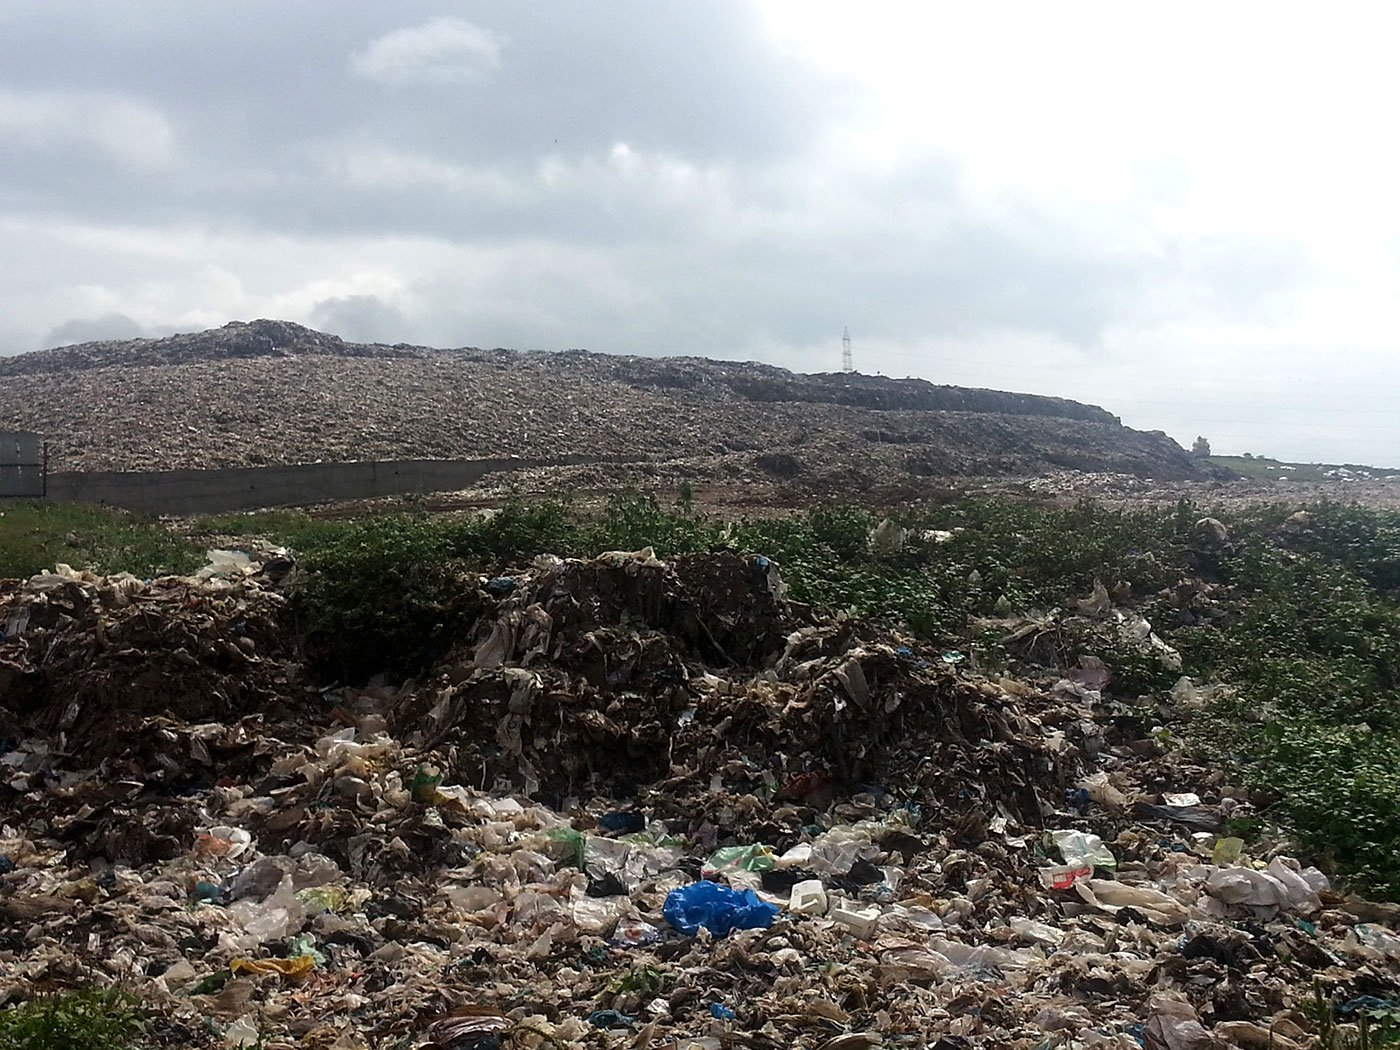 A wide shot of the Uruli Devachi garbage dump